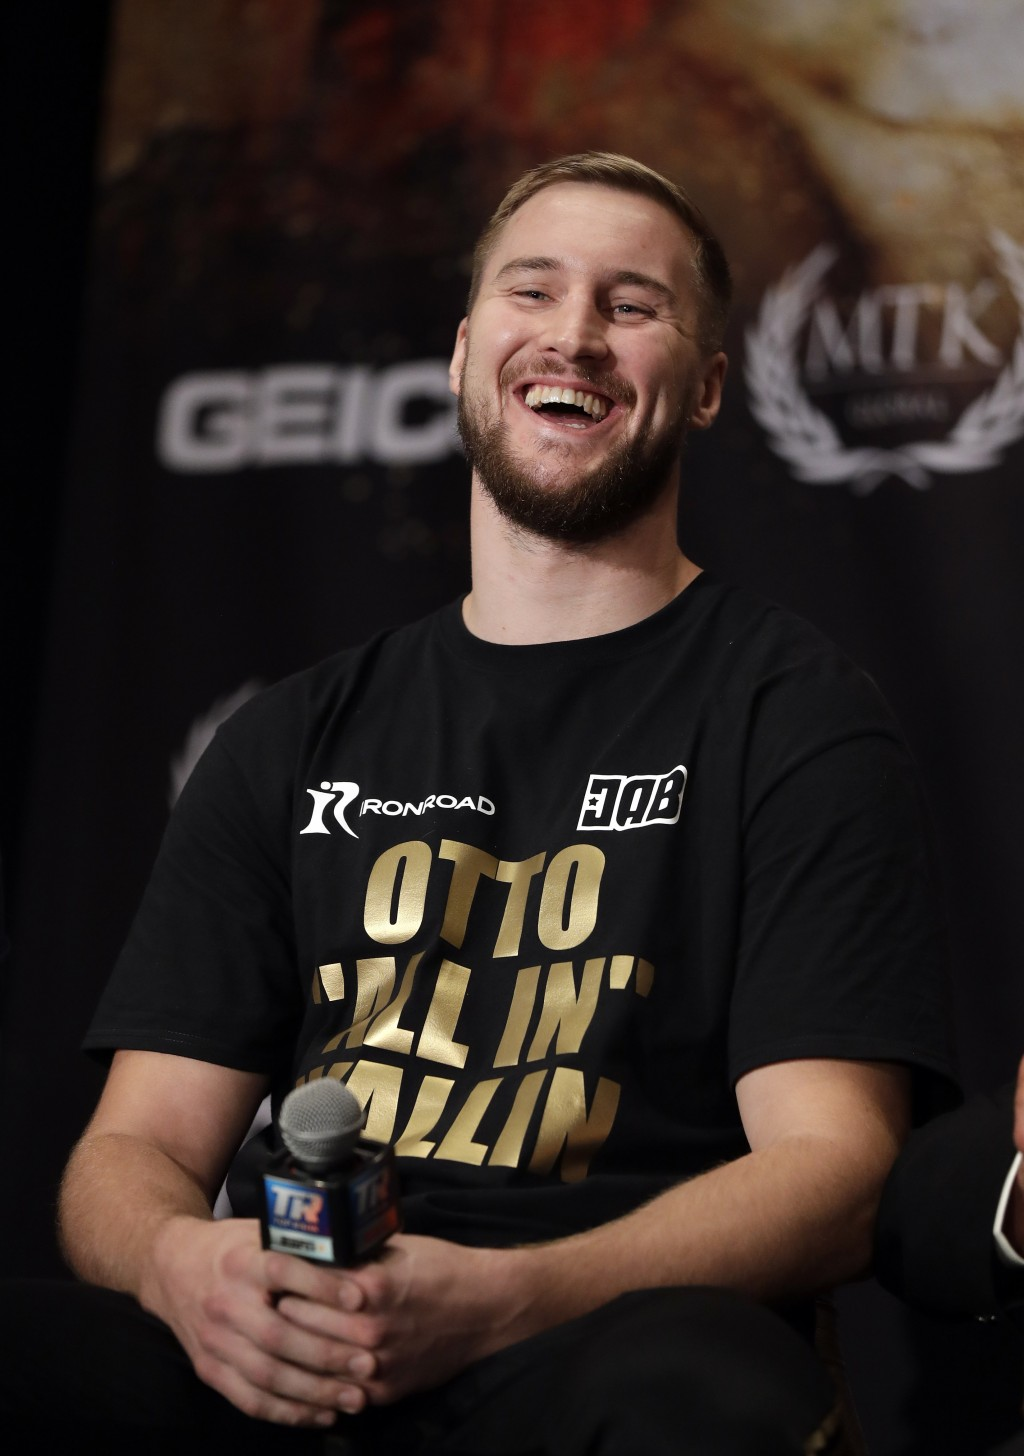 Otto Wallin, of Sweden, laughs during a news conference Wednesday, Sept. 11, 2019, in Las Vegas. Wallin will face Tyson Fury in a heavyweight boxing m...